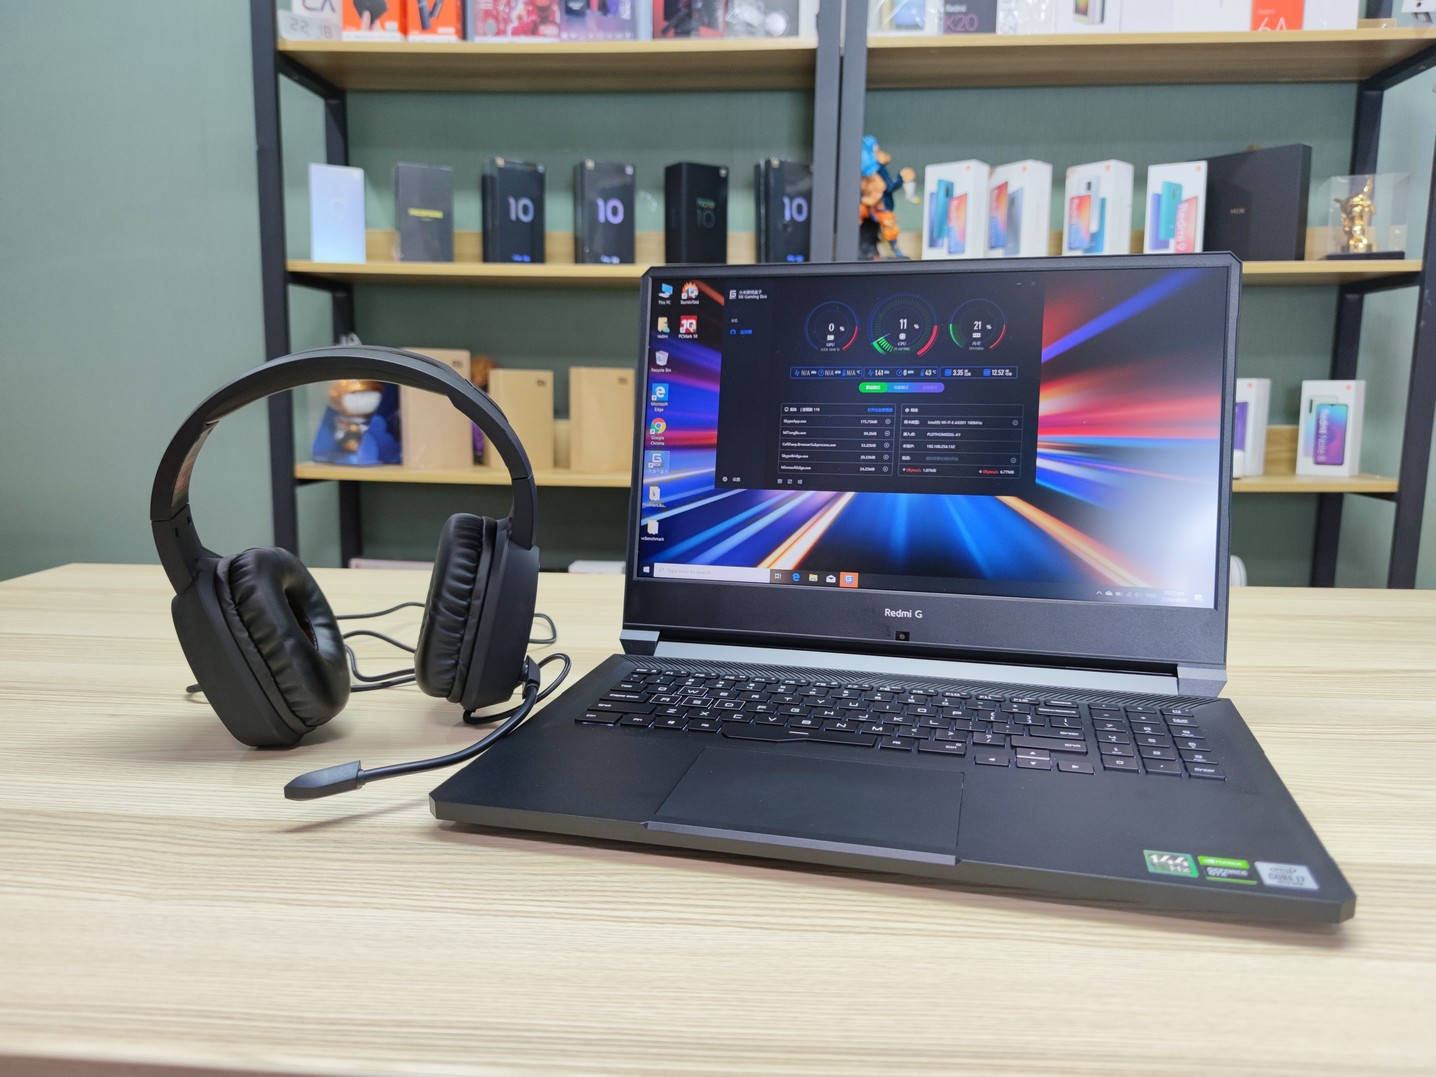 Redmi G a Gaming Laptop with 144Hz Display